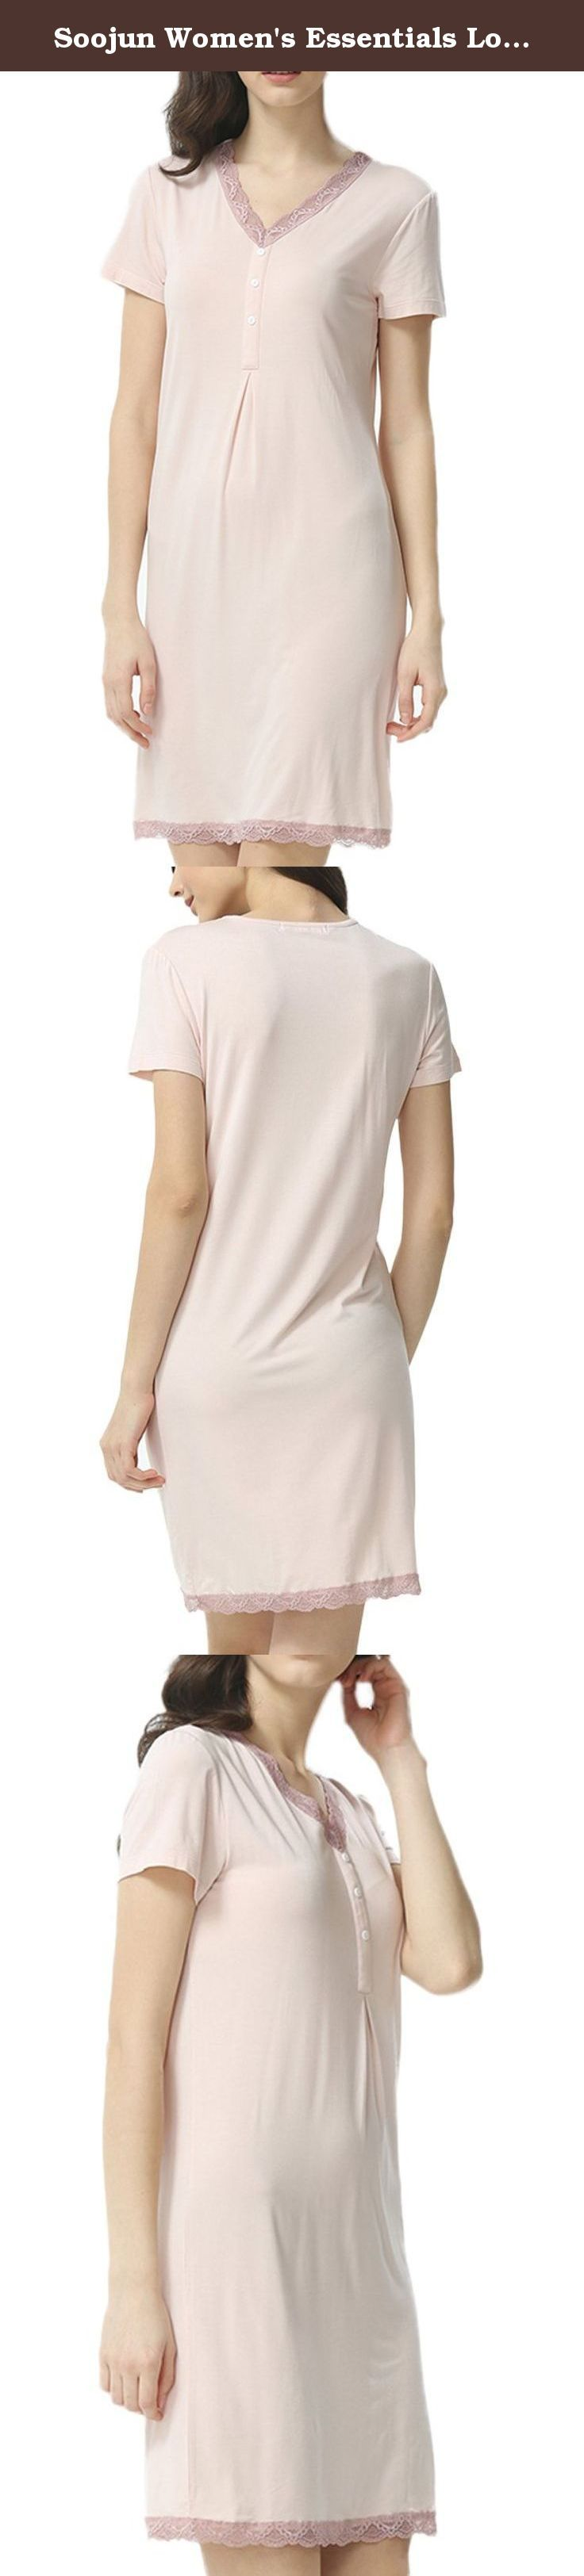 Soojun Women's Essentials Lounger Cute Nighty Nightgown Short Sleeve, Nude, US 2. This essentials long & short sleeve night dress features a V-neck and super soft cotton for ultimate comfort, Cute lace neckline and hem. We use post service (USPS, etc), express service (Fedex, DHL, UPS etc) to ship your package. You can easily get estimated delivery date when you place the order. Please feel free to contact us for any problems by email. .